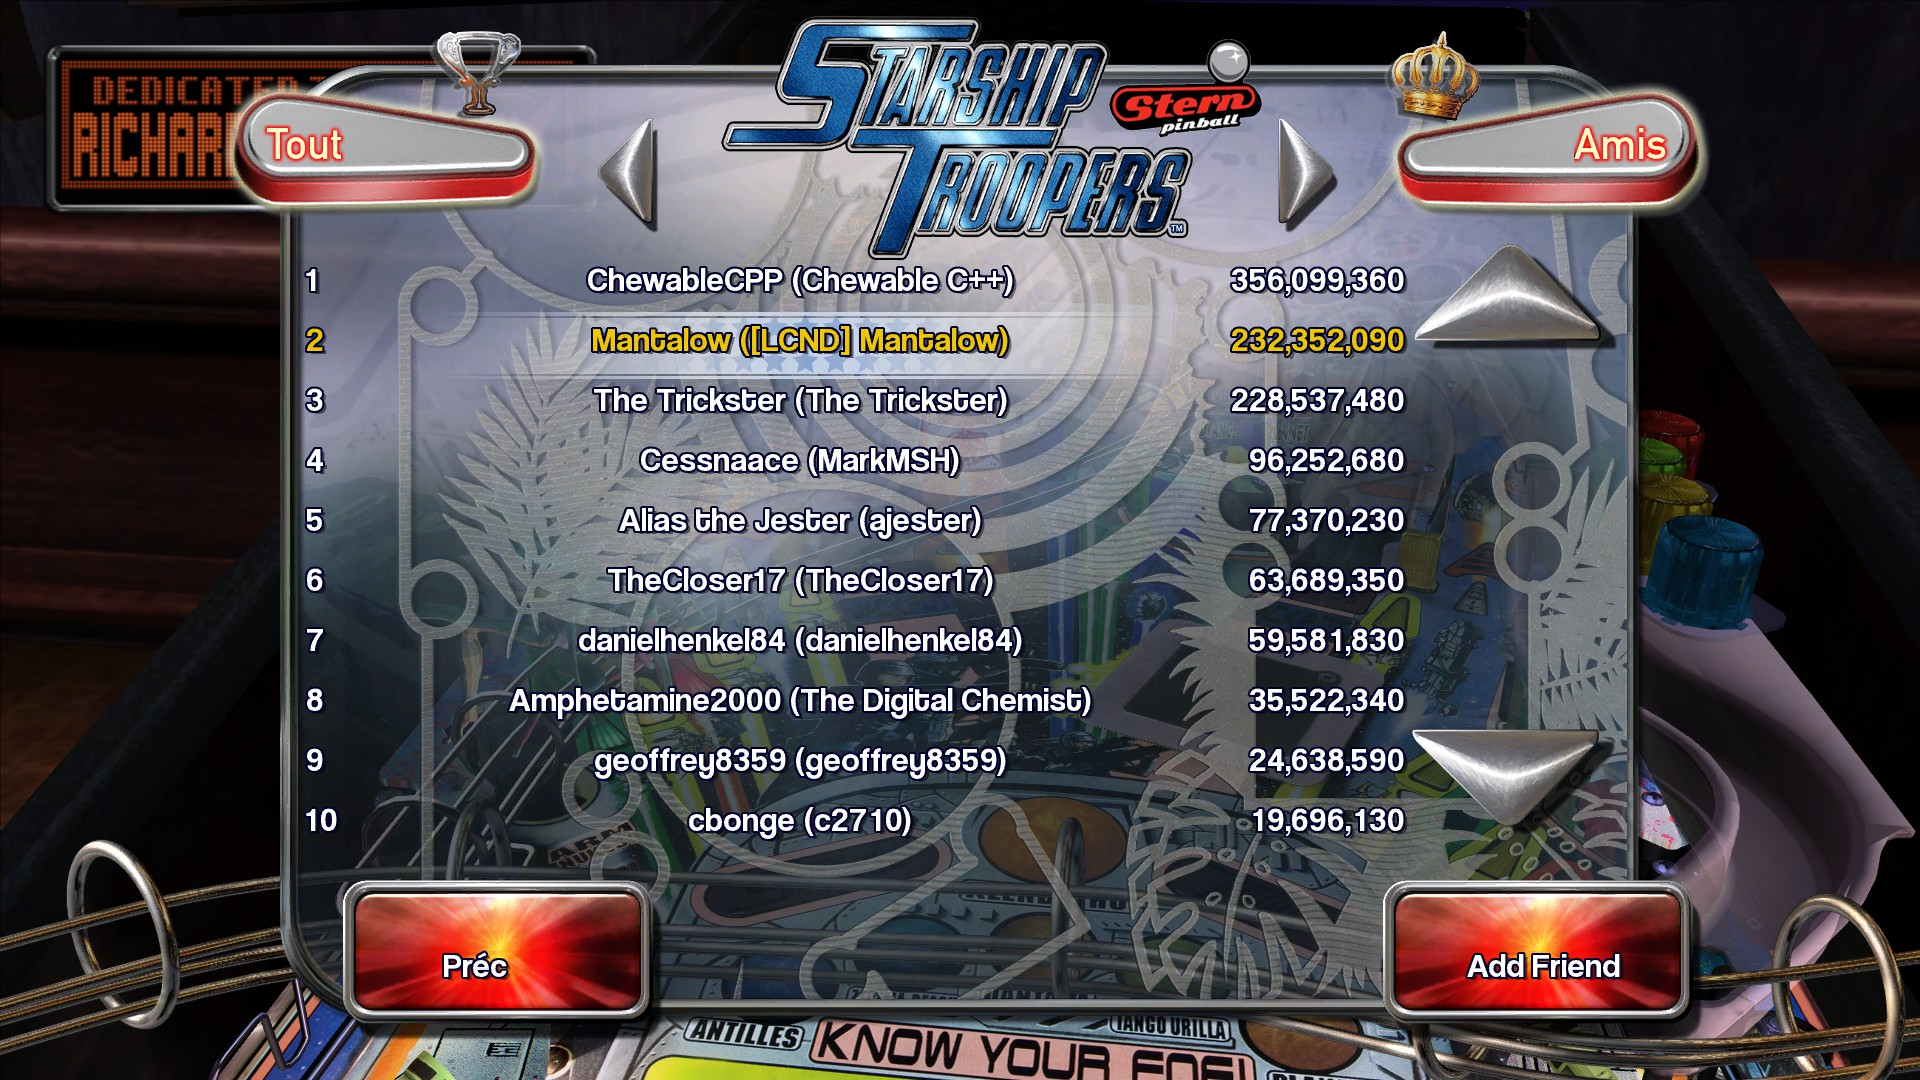 Mantalow: Pinball Arcade: Starship Troopers (PC) 232,352,090 points on 2016-02-28 04:30:08